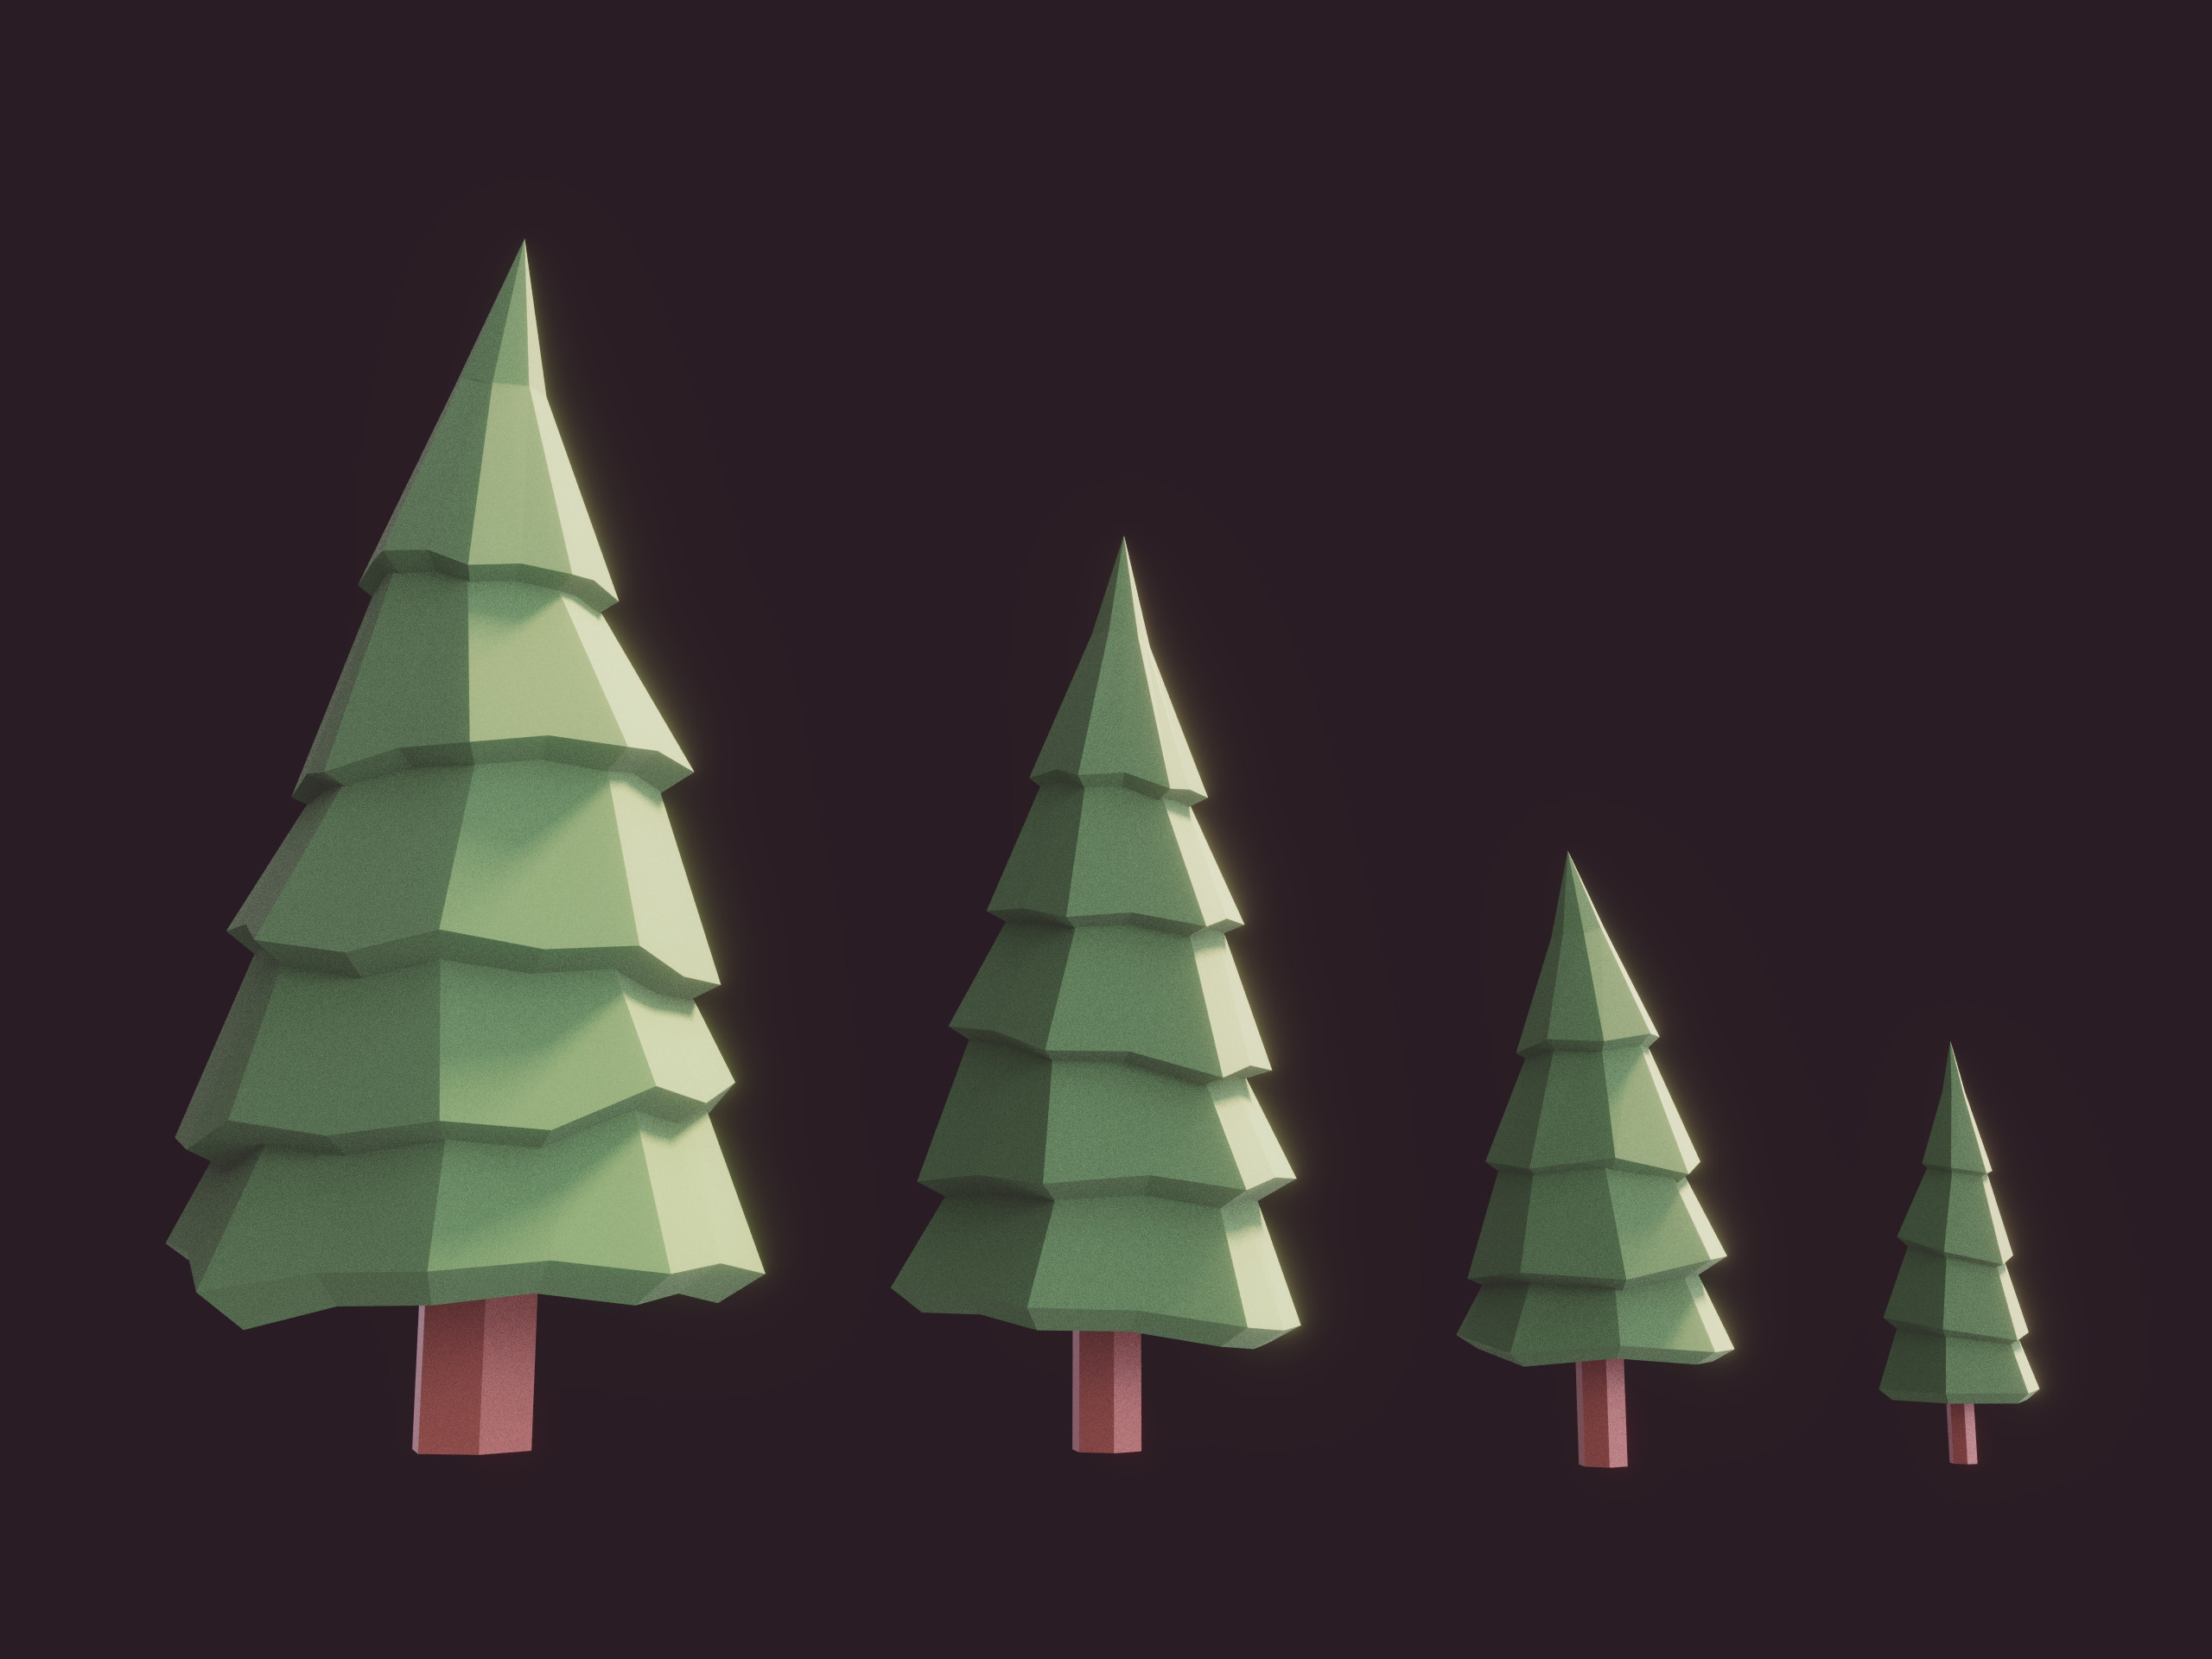 Some lowpoly fir trees by romanpapush